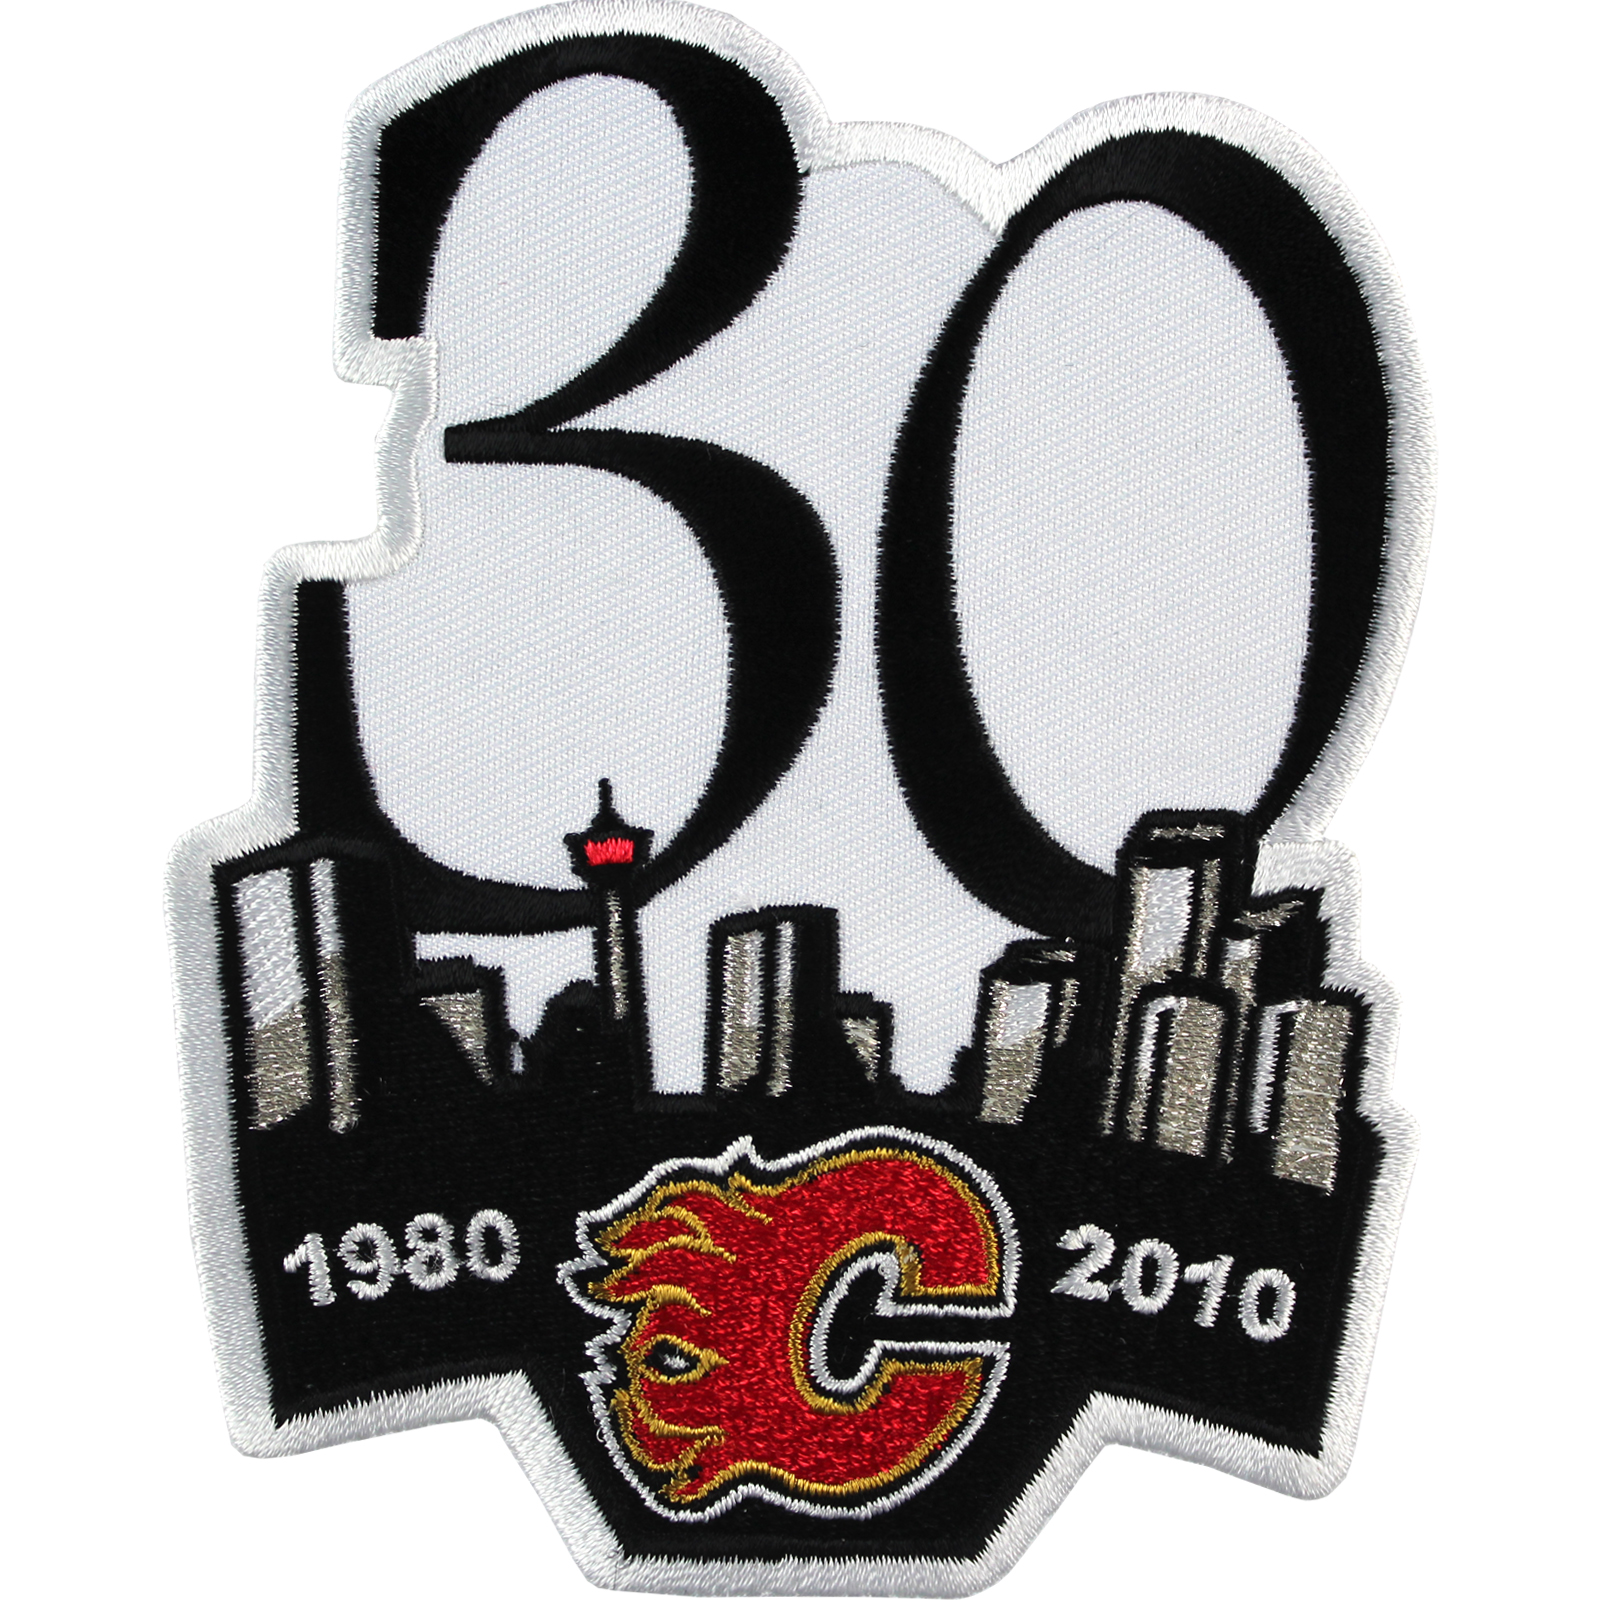 2010 Calgary Flames 30th Anniversary Season Jersey Sleeve Patch 2009 Logo Emblem